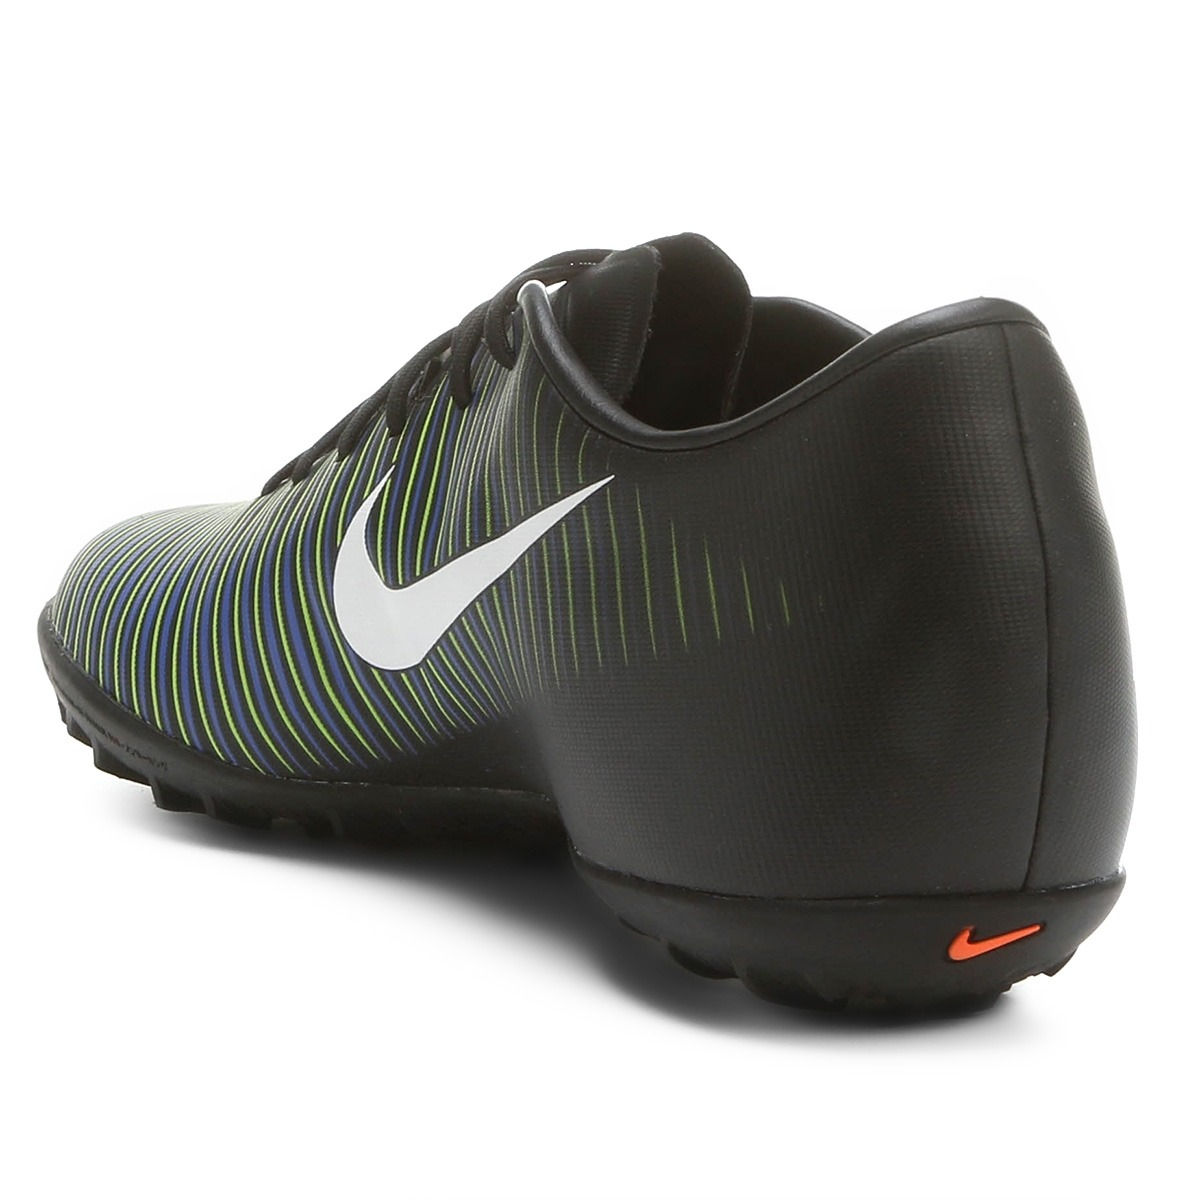 ffcf0a5c01 ... chuteira nike mercurial victory 6 tf society original com nf. Carregando  zoom. authentic 01099 . ...